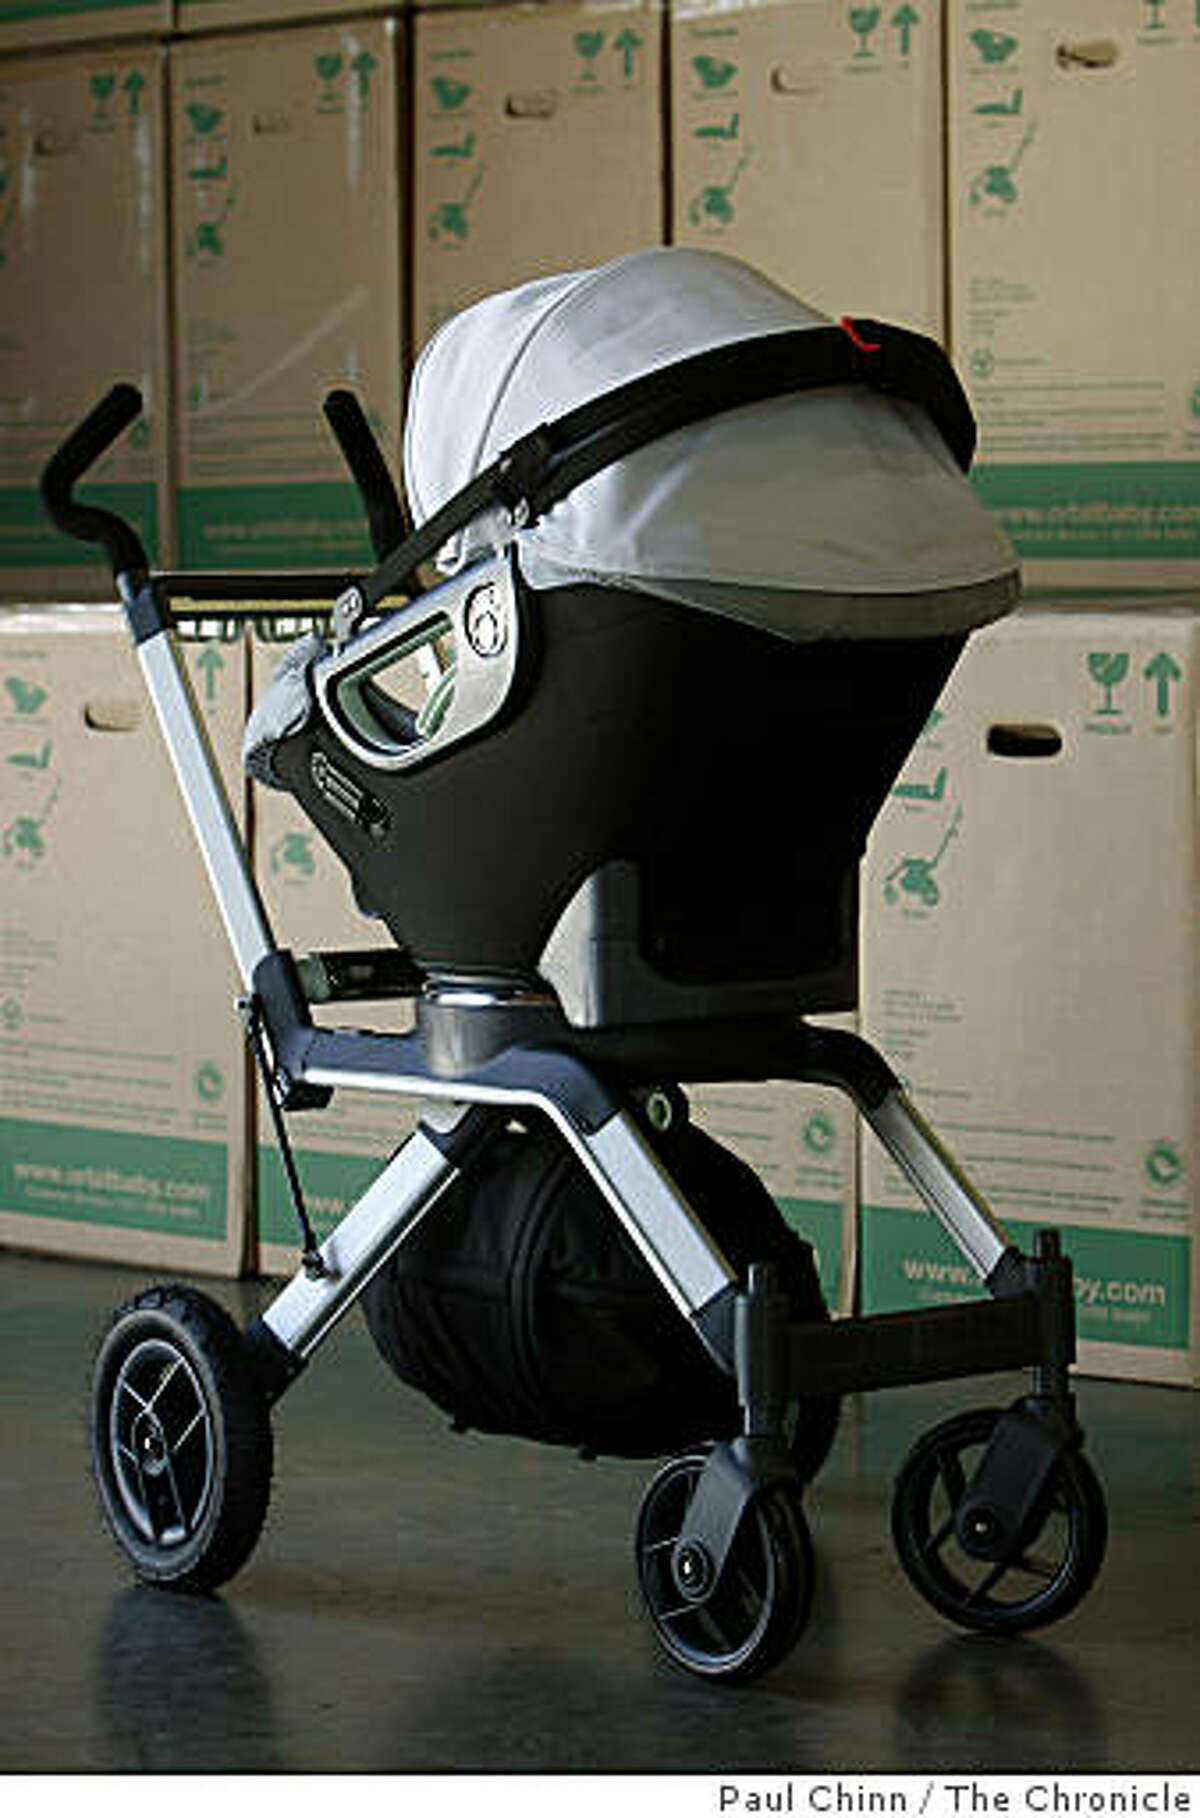 The Orbit Baby stroller is displayed in the company's warehouse in Newark, Calif., on Friday, March 20, 2009.